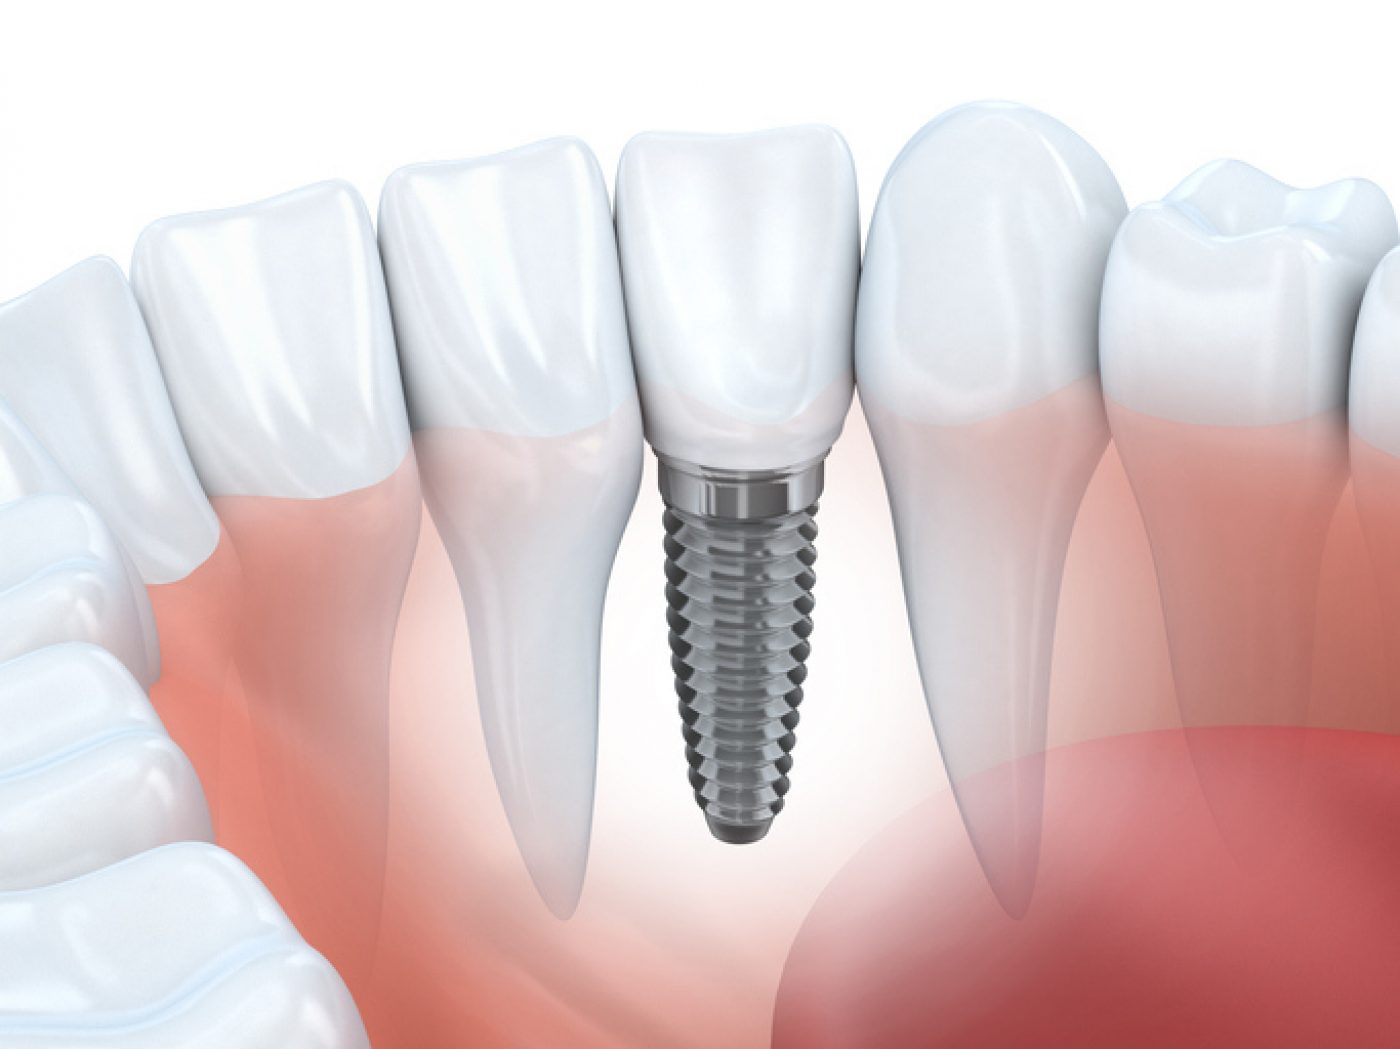 Single Implant Portman Dental And Implant Clinic Maidenhead